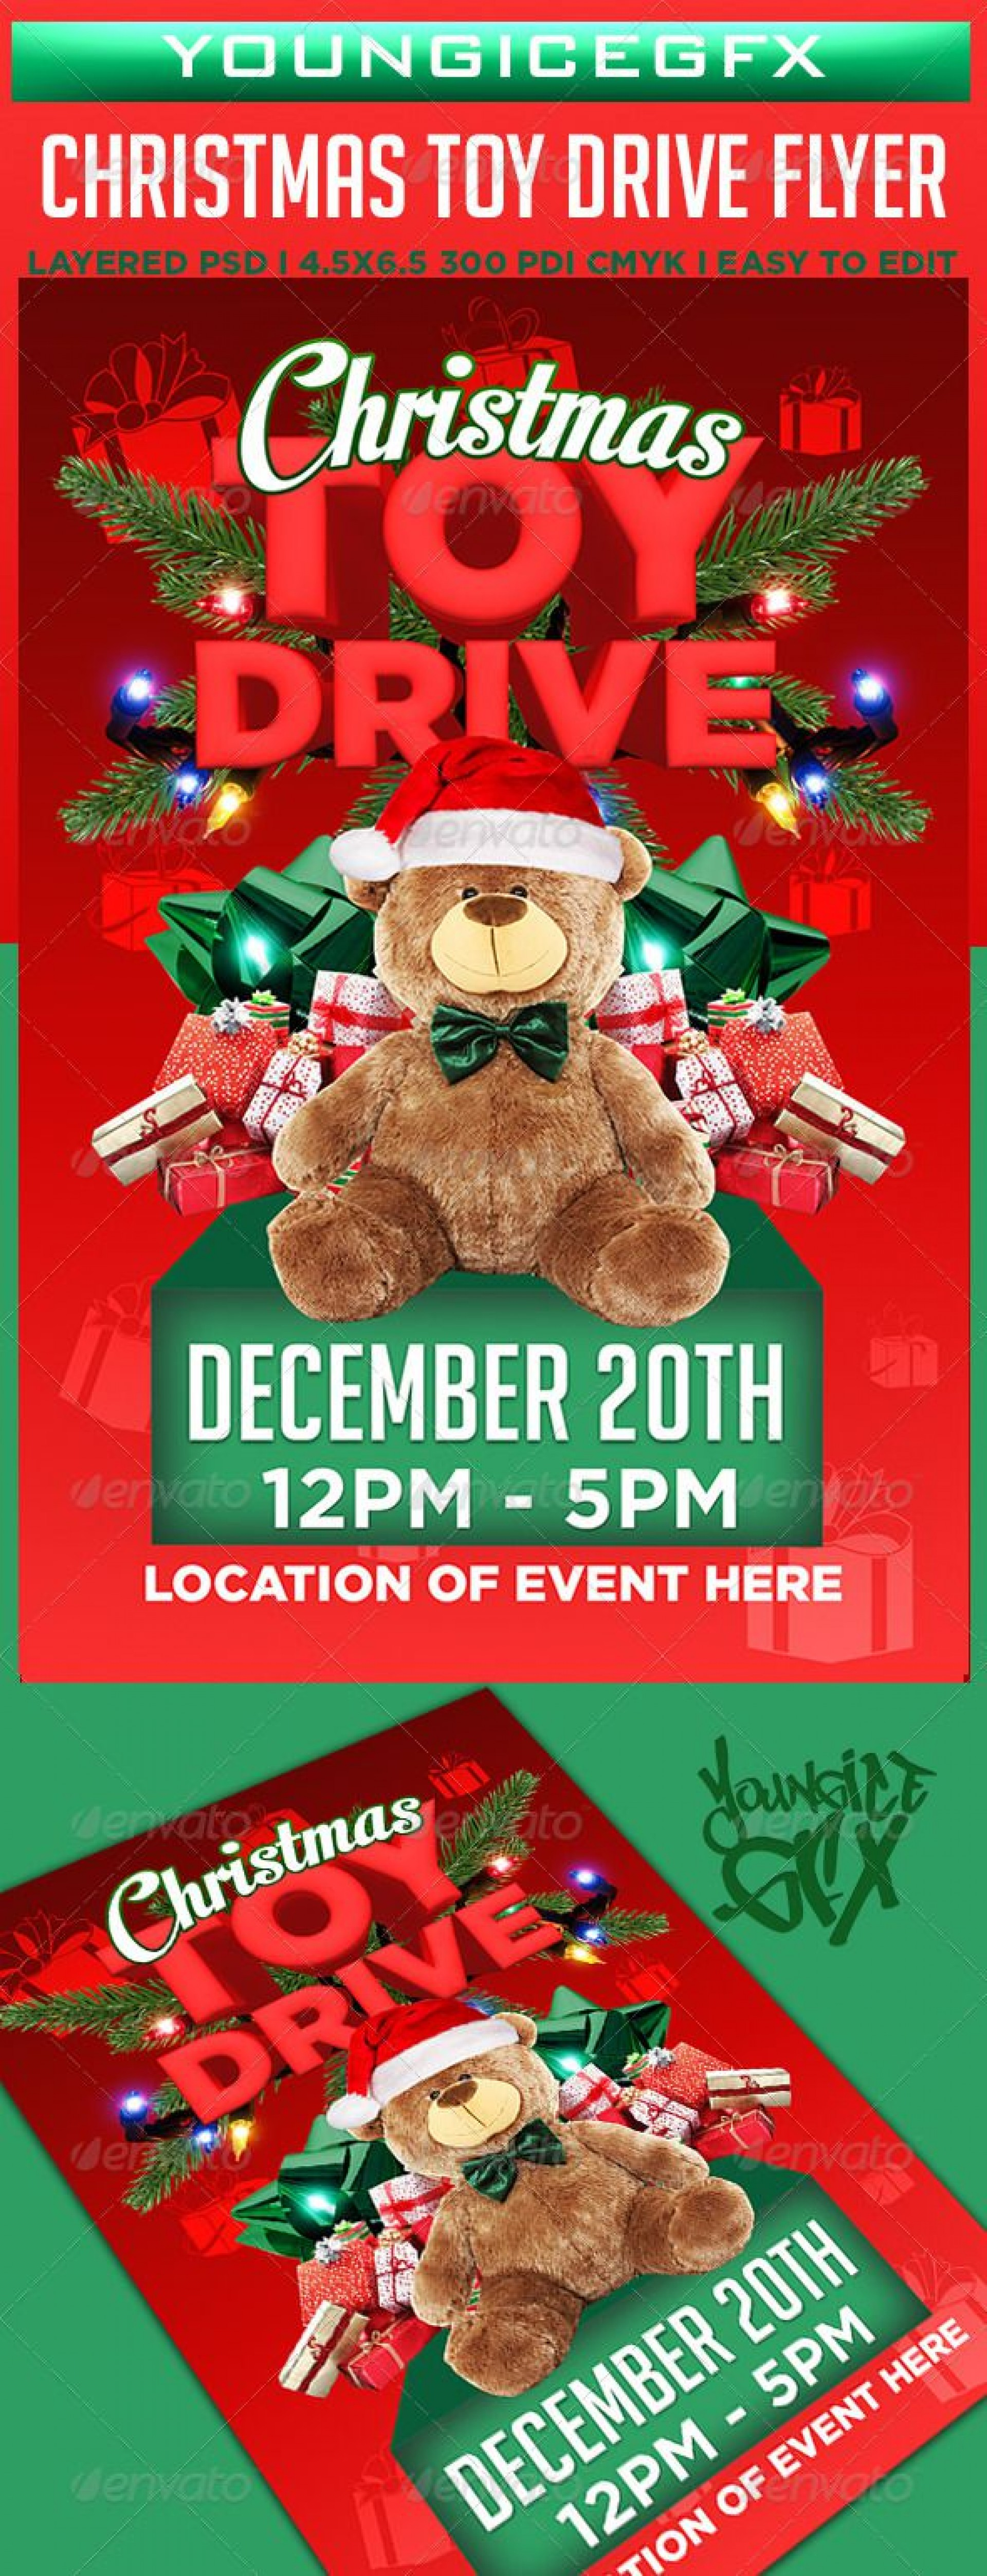 005 Dreaded Toy Drive Flyer Template Design  Holiday Download Free Word1920